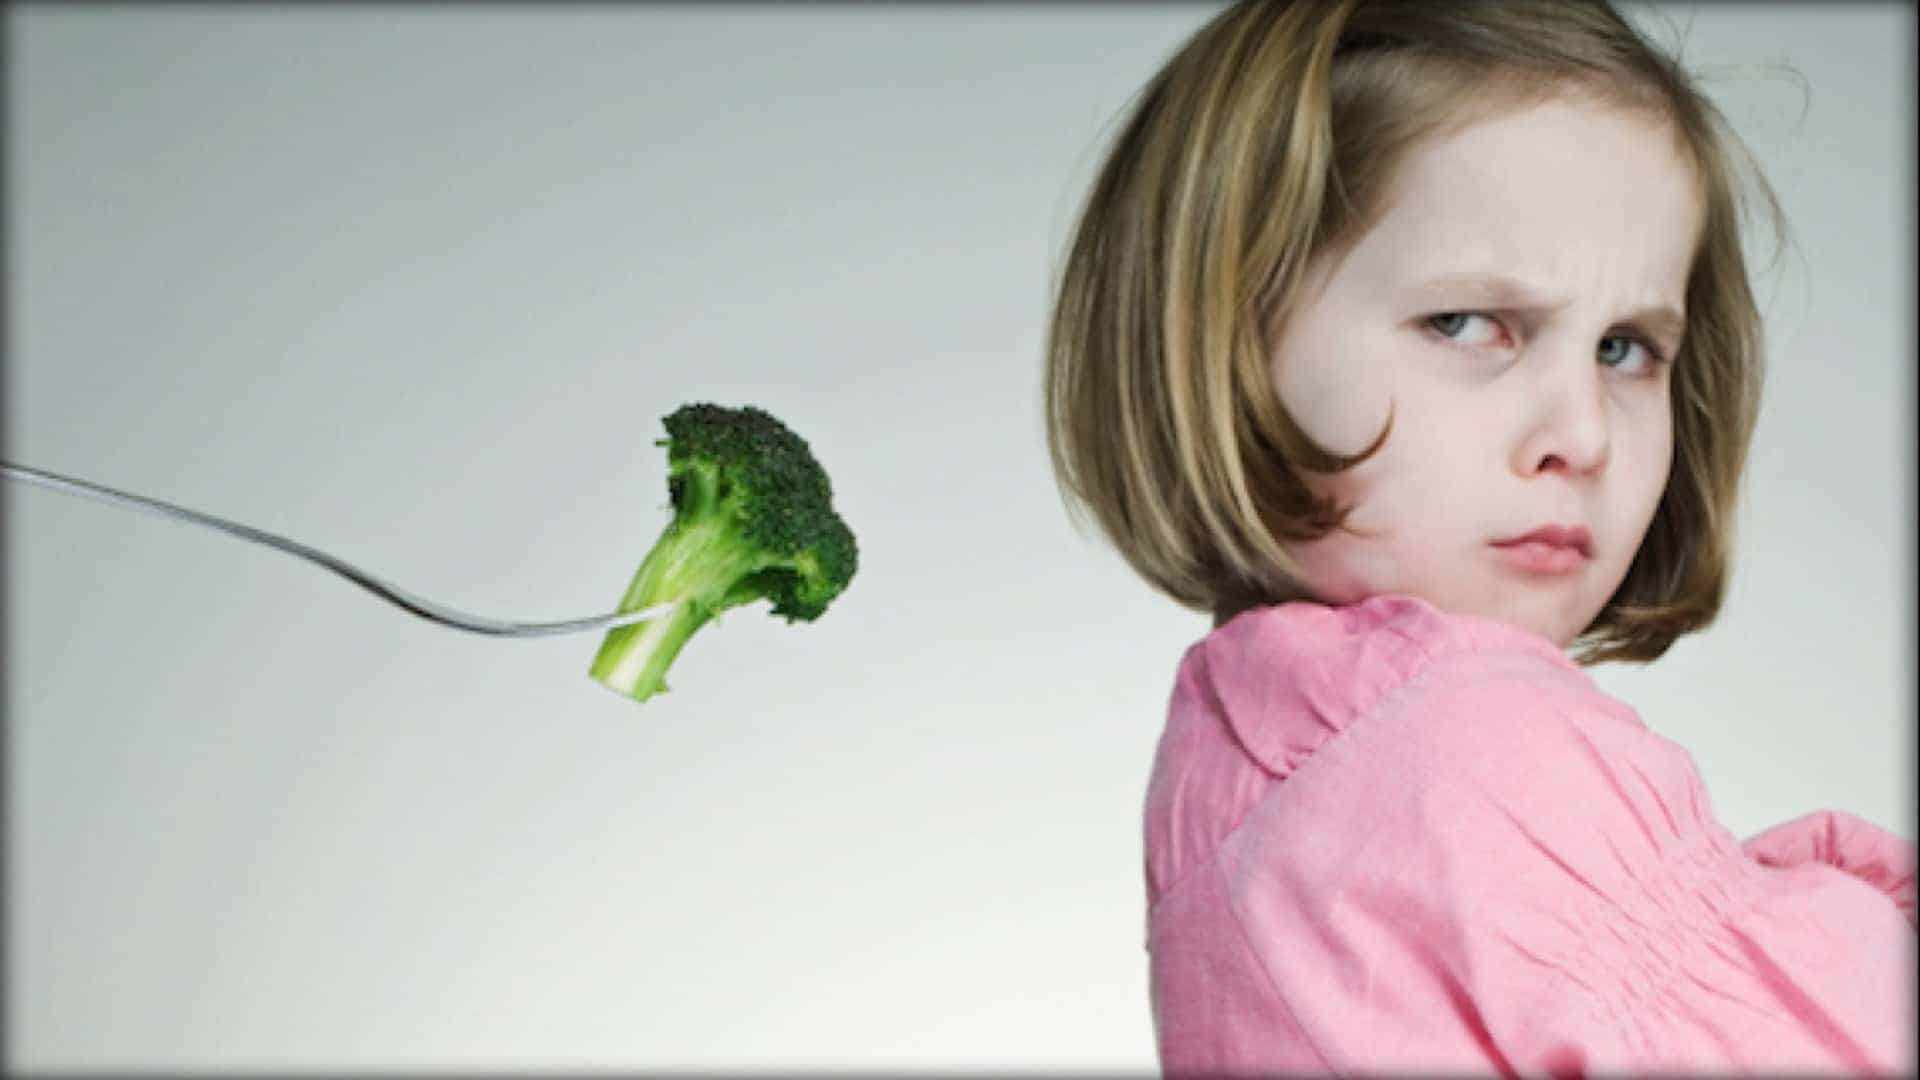 On the left is a cutlery fork. The holder is out of view. A sprig of broccoli is held within the tines of the fork. On the right is a child with their arms crossed and back towards the fork. They have their head turned and are scowling at the broccoli.